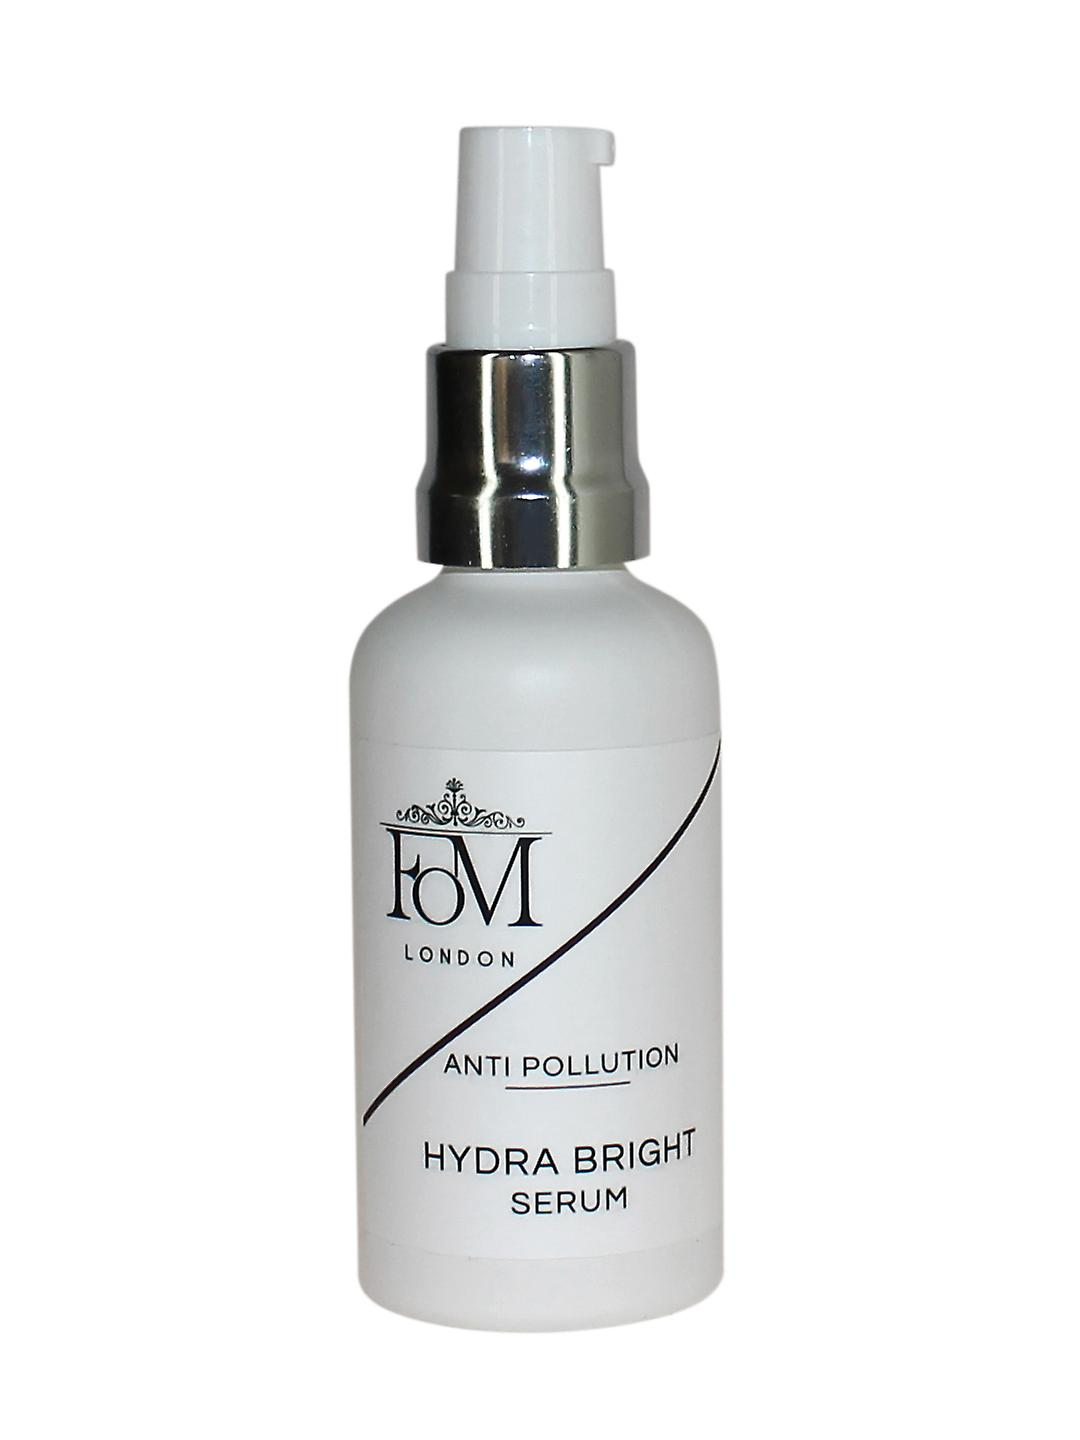 HYDRA BRIGHT SERUM